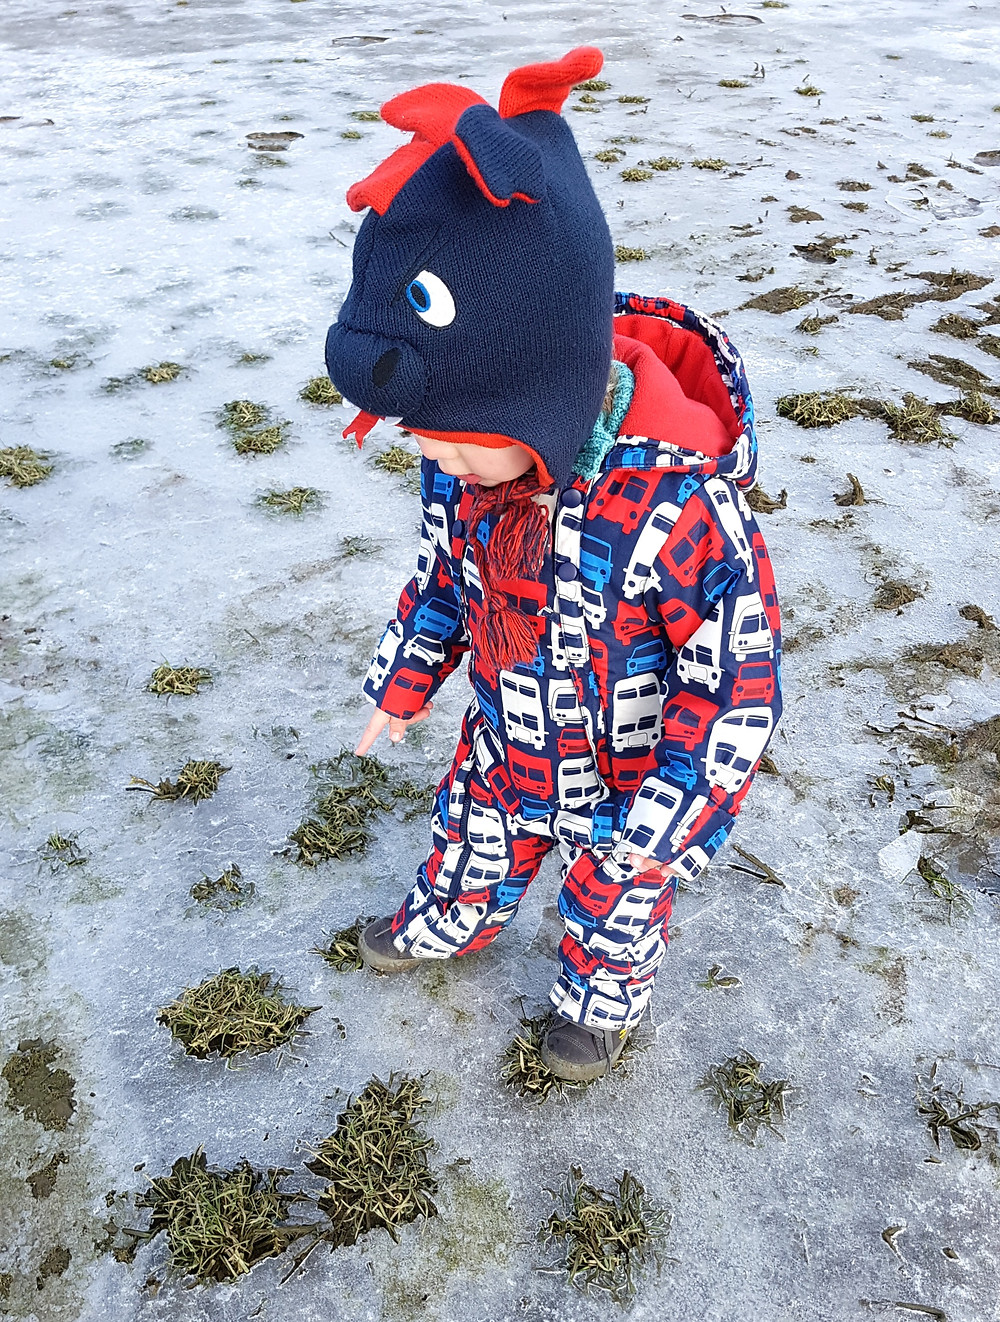 Toddler walking on ice, Going on a sound hunt, sensory play for kids